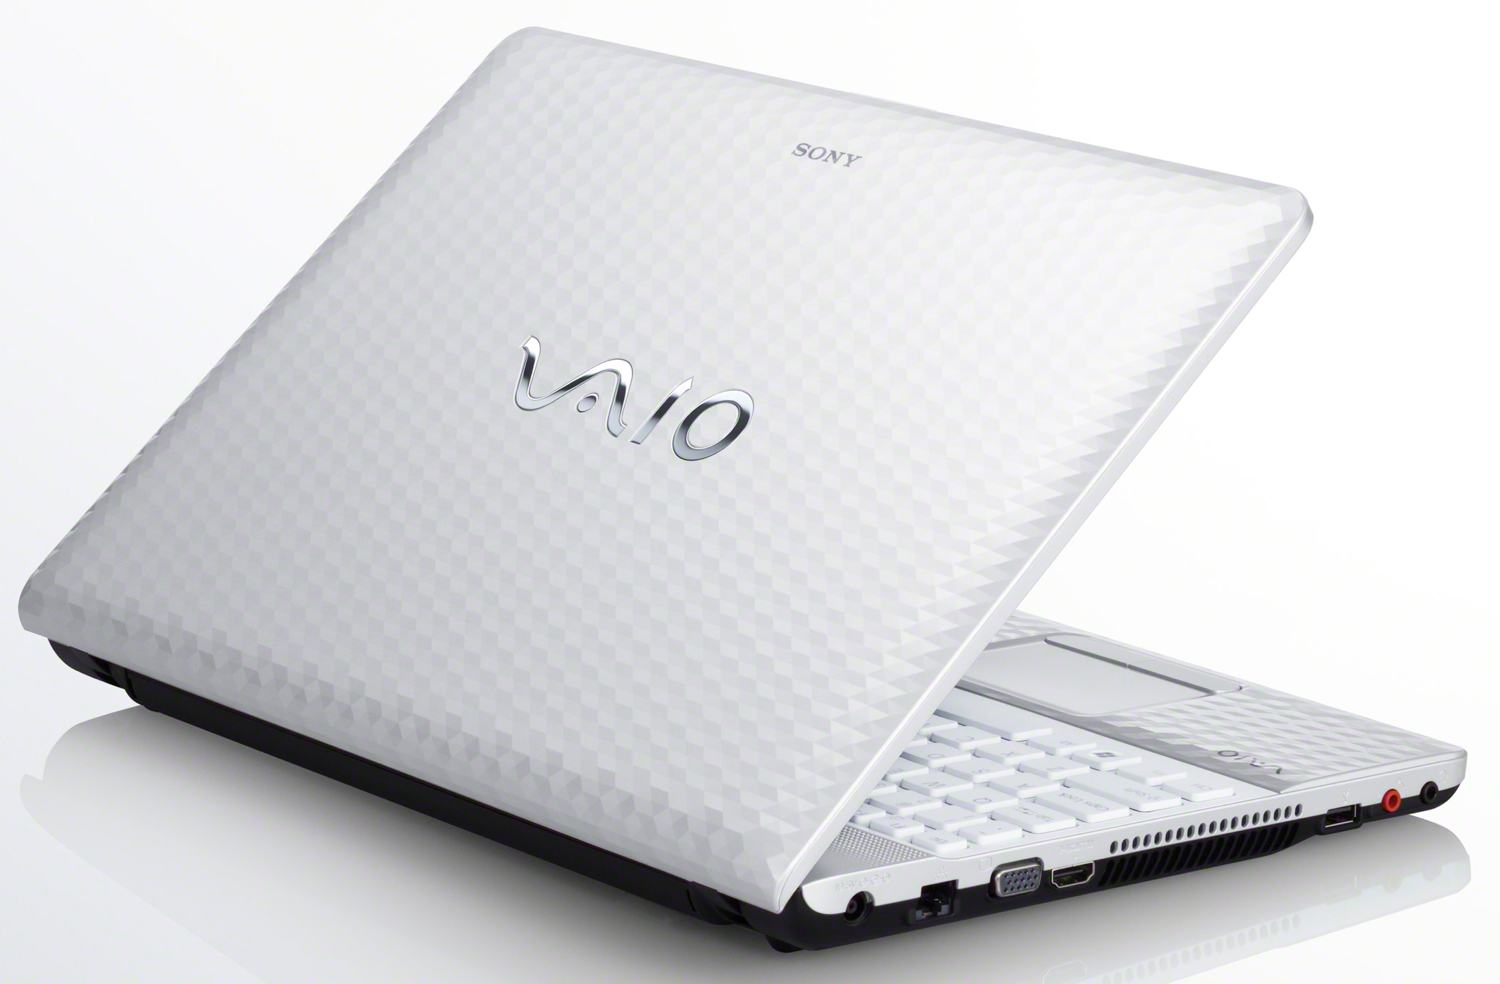 http://images.amazon.com/images/G/01/electronics/sony/sony-11q4-vaio-eh-white-coveropen-lg.jpg